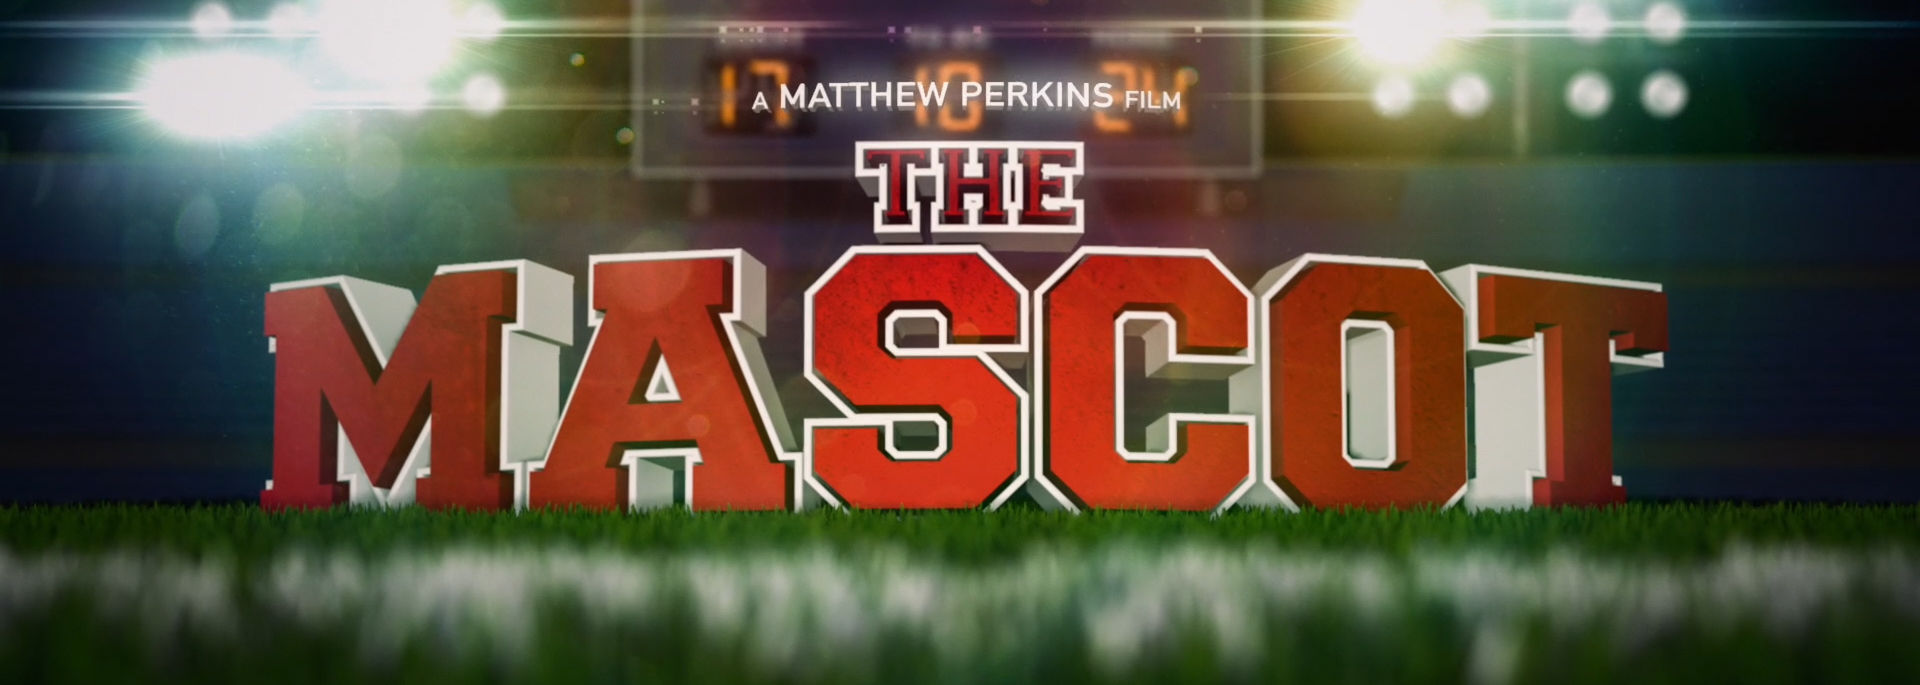 The Mascot channel